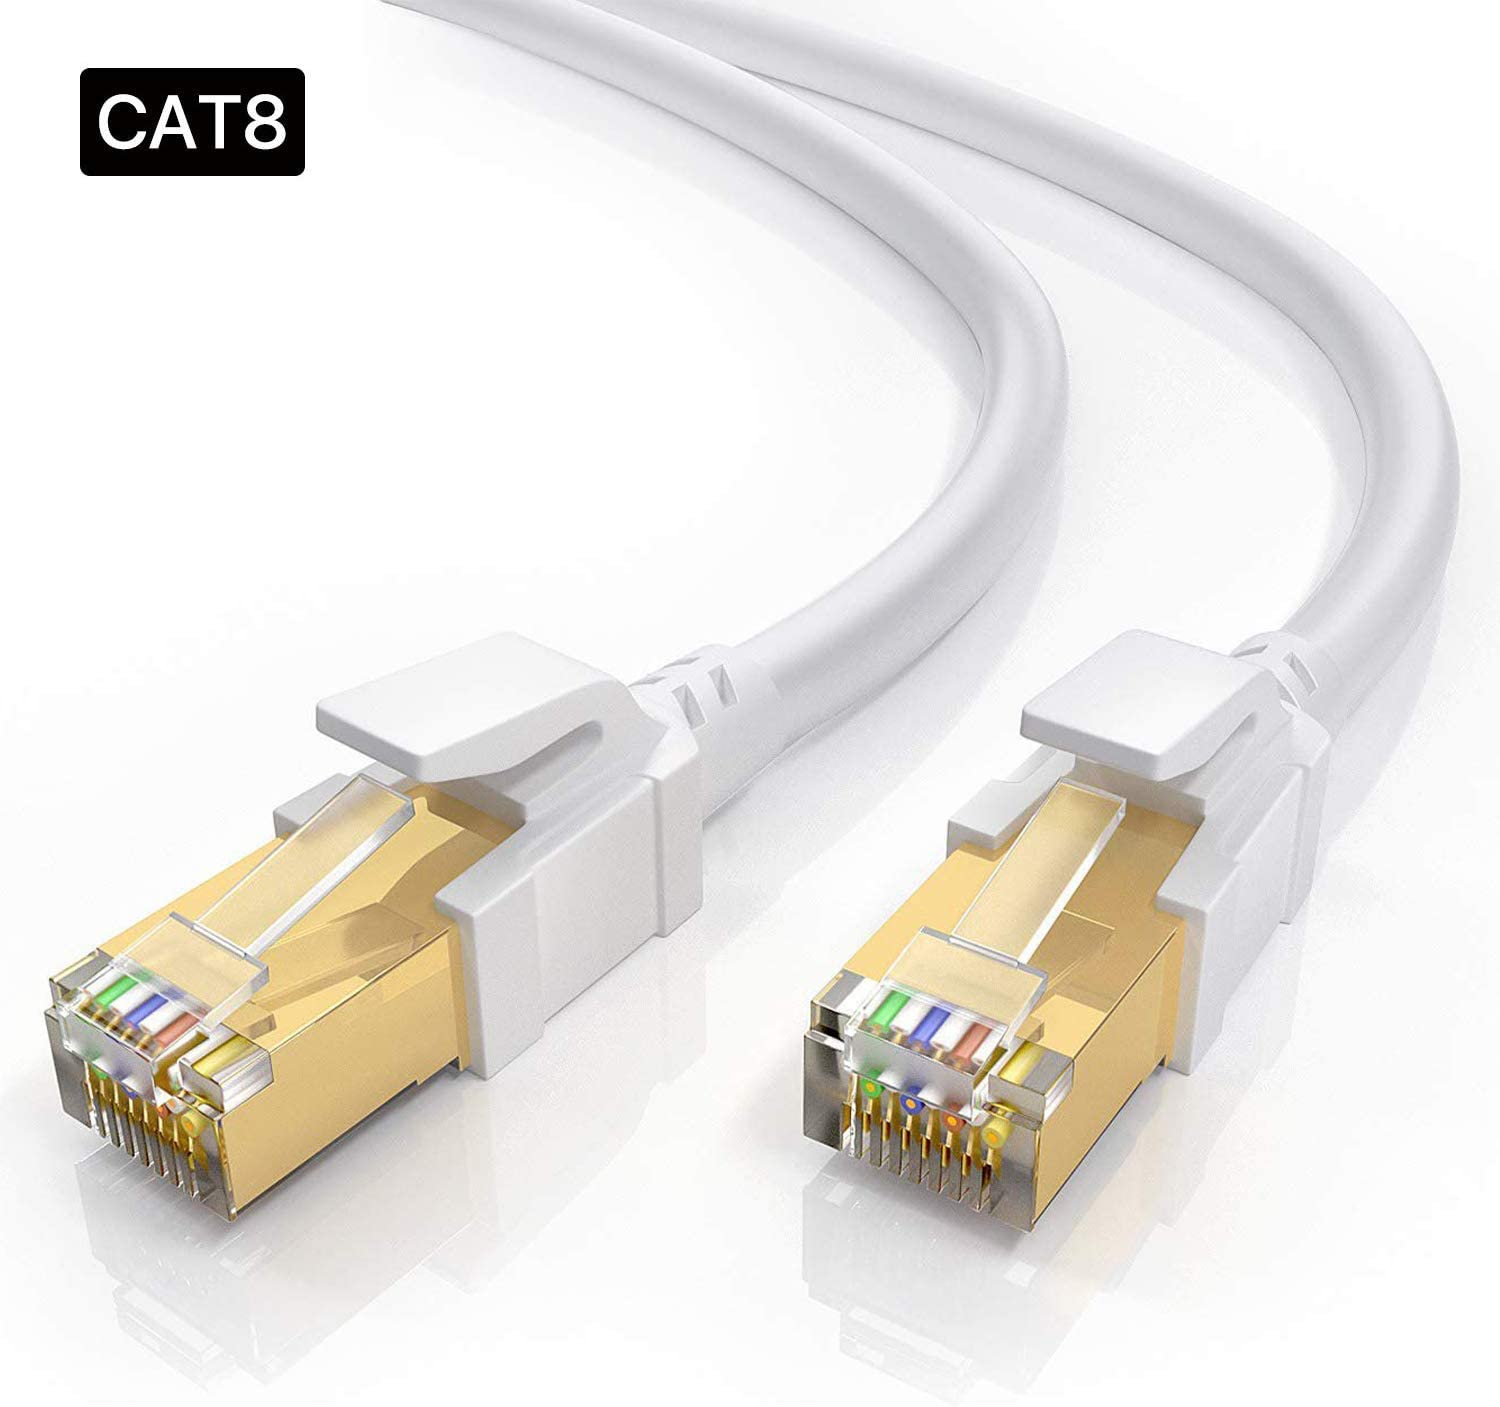 PC Modem 26AWG Lastest 40Gbps 2000Mhz SFTP Patch Cord,with Gold Plated RJ45 Connector Comfortable with Router White,25FT Laptop LoYinLo CAT8 Ethernet Cable Hub Gaming